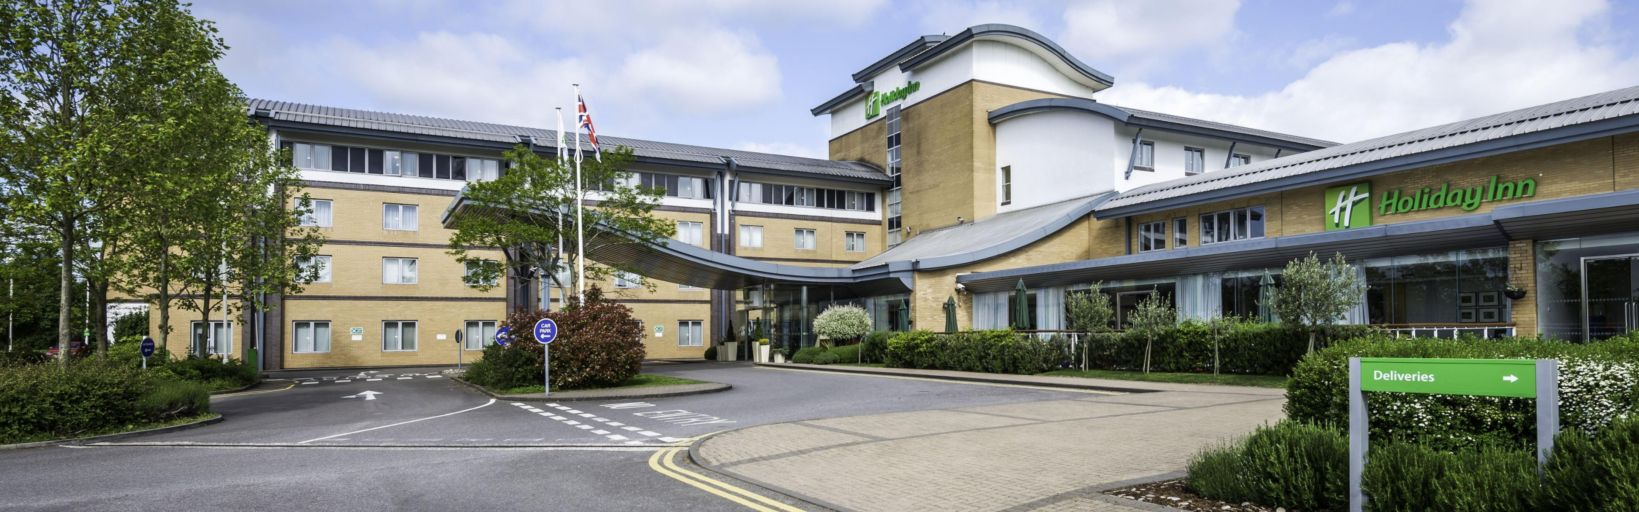 Hotels Near Oxford Parkway Station Holiday Inn Oxoford